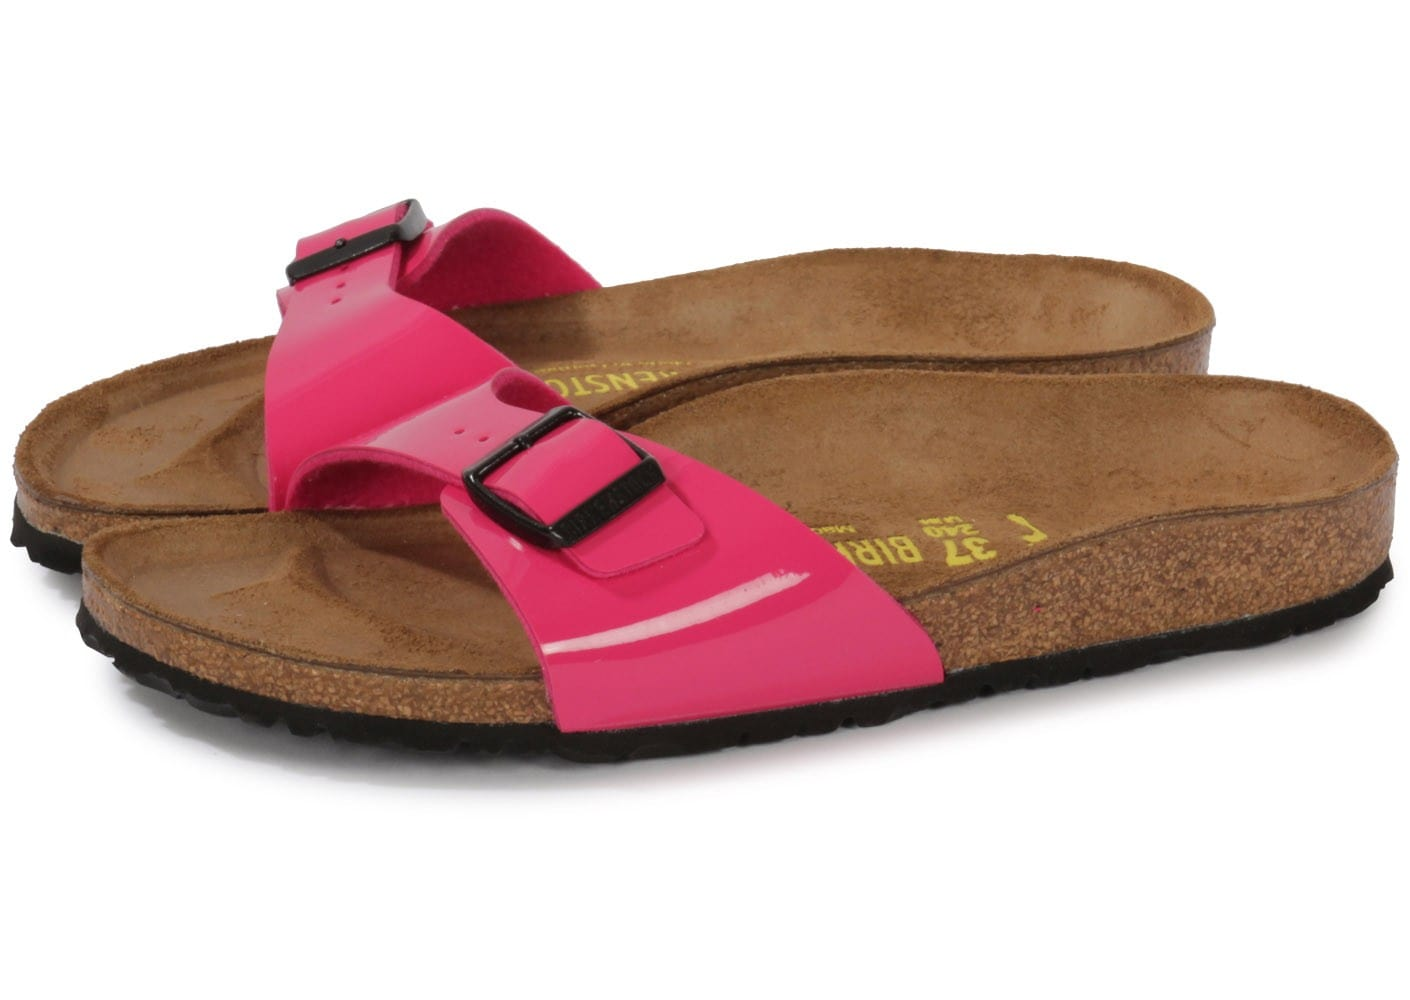 birkenstock madrid vernis rose chaussures chaussures chausport. Black Bedroom Furniture Sets. Home Design Ideas